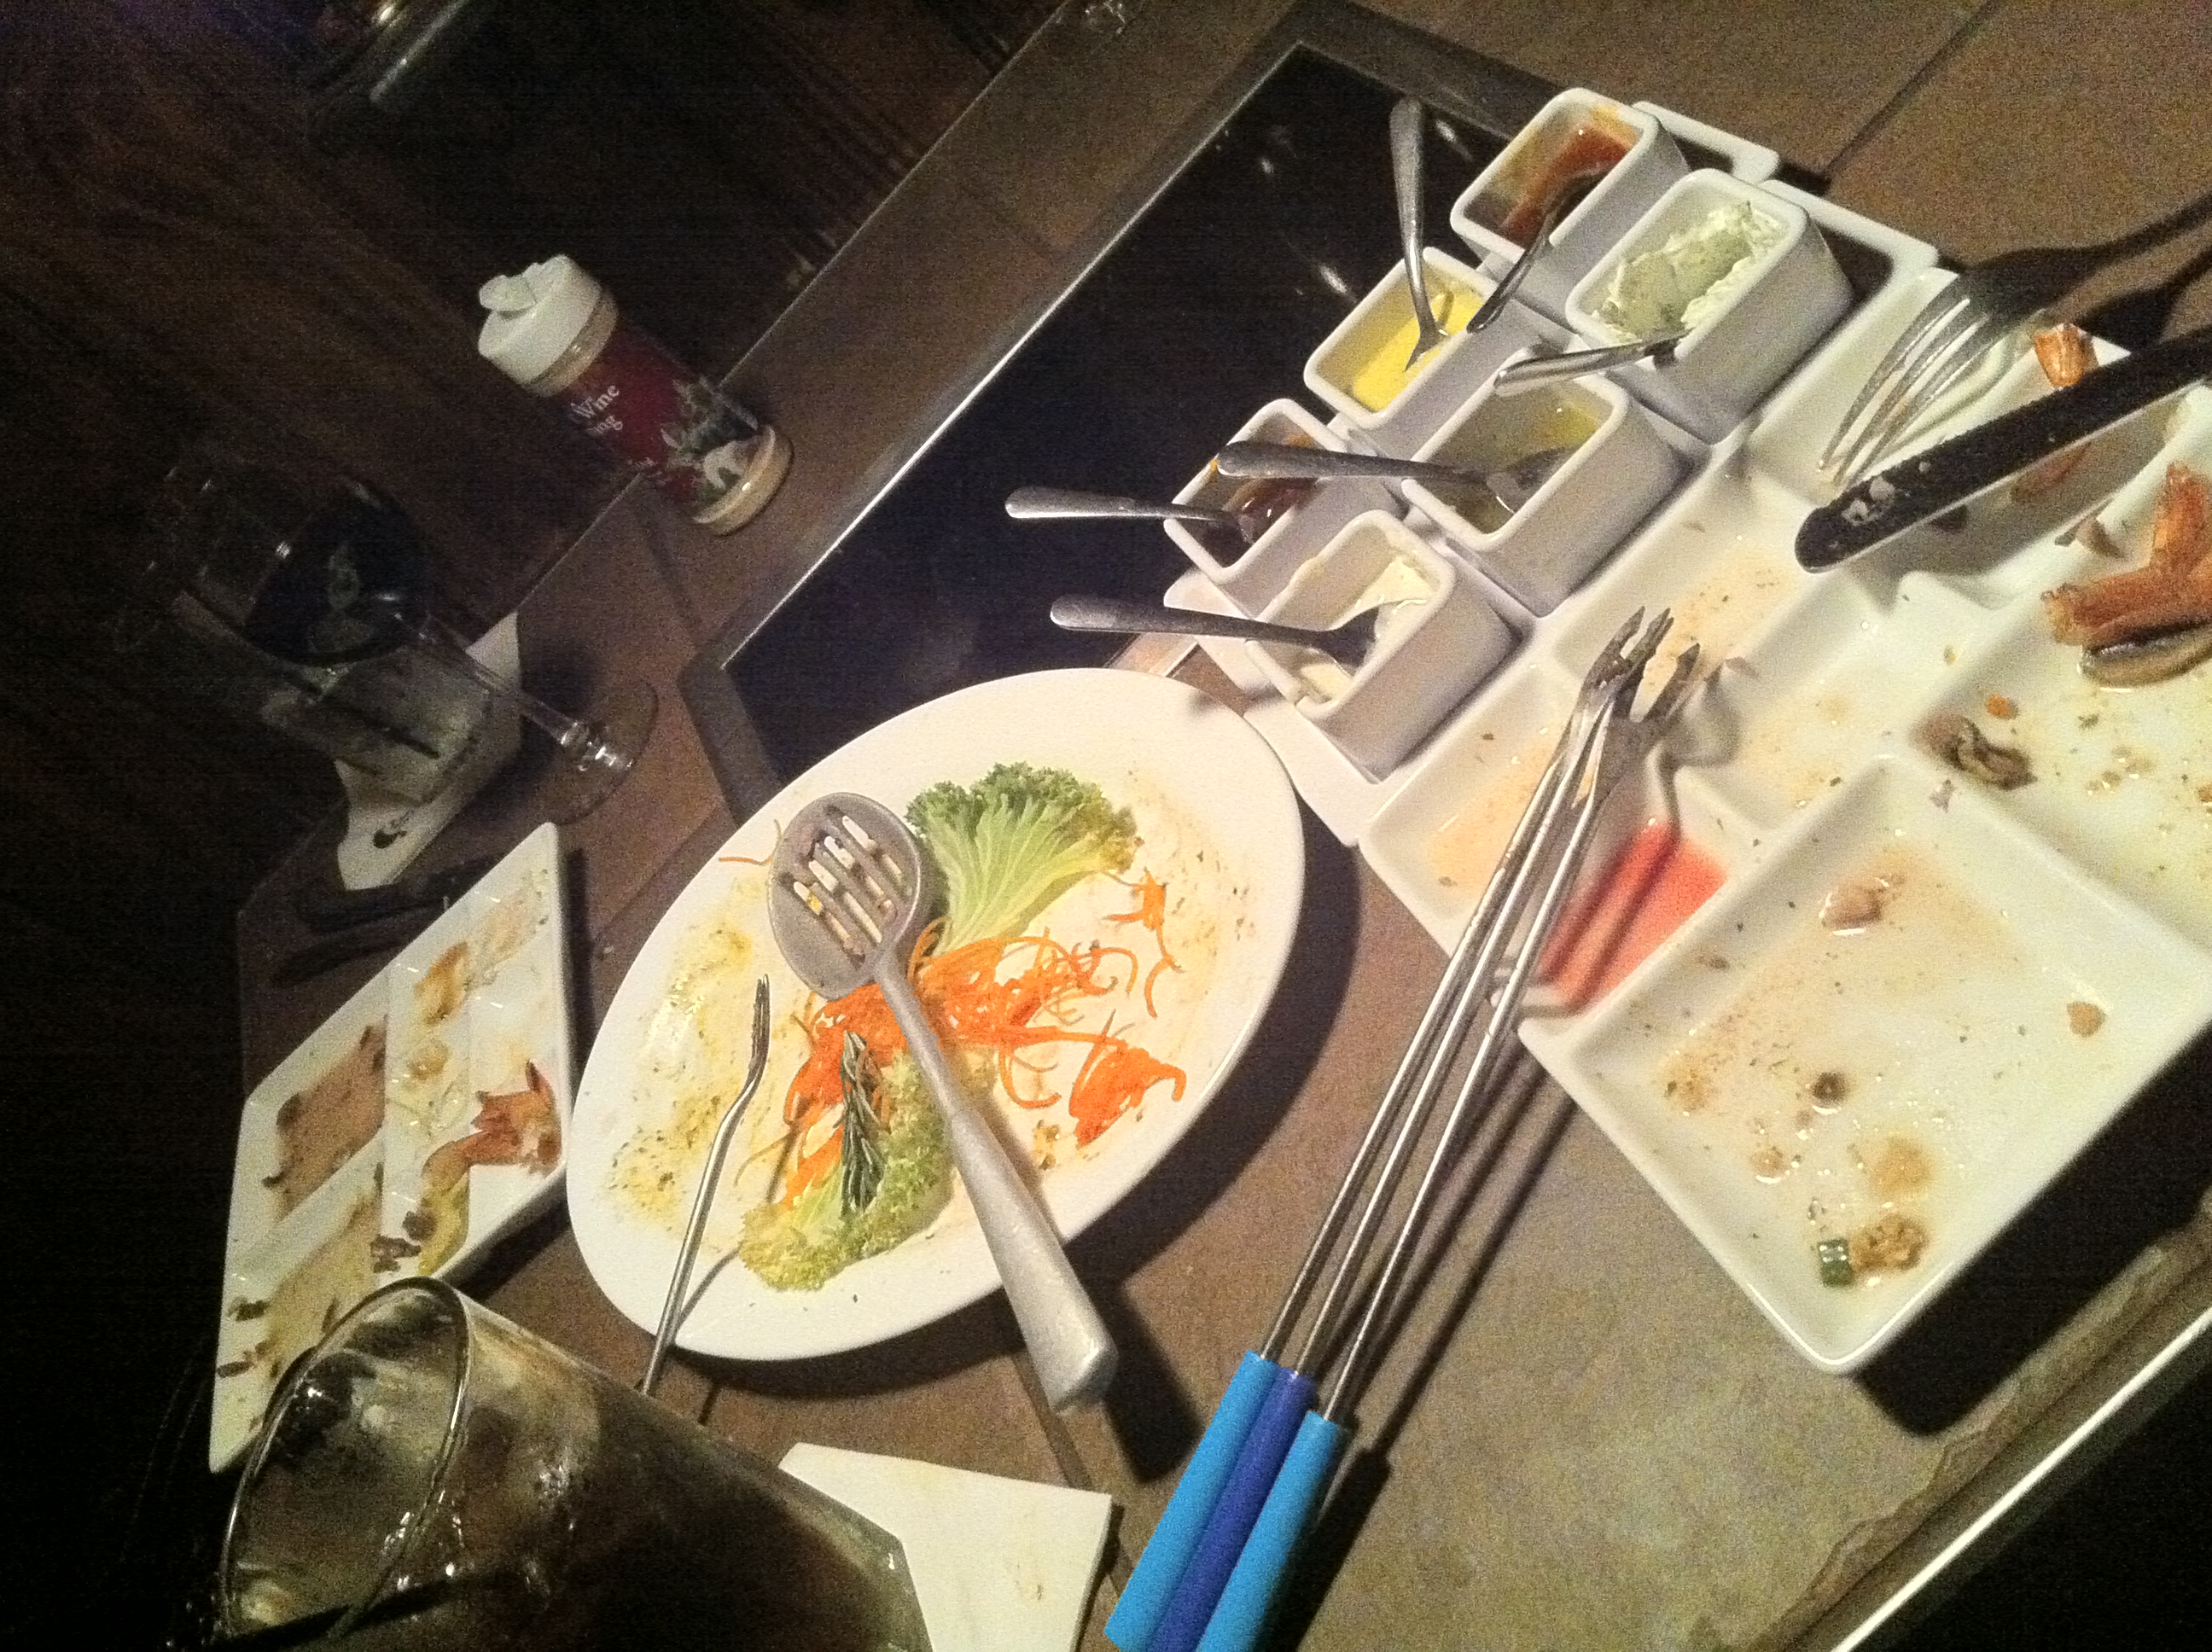 This is hwat your table looks like afterwards at theMelting Pot of Tampa